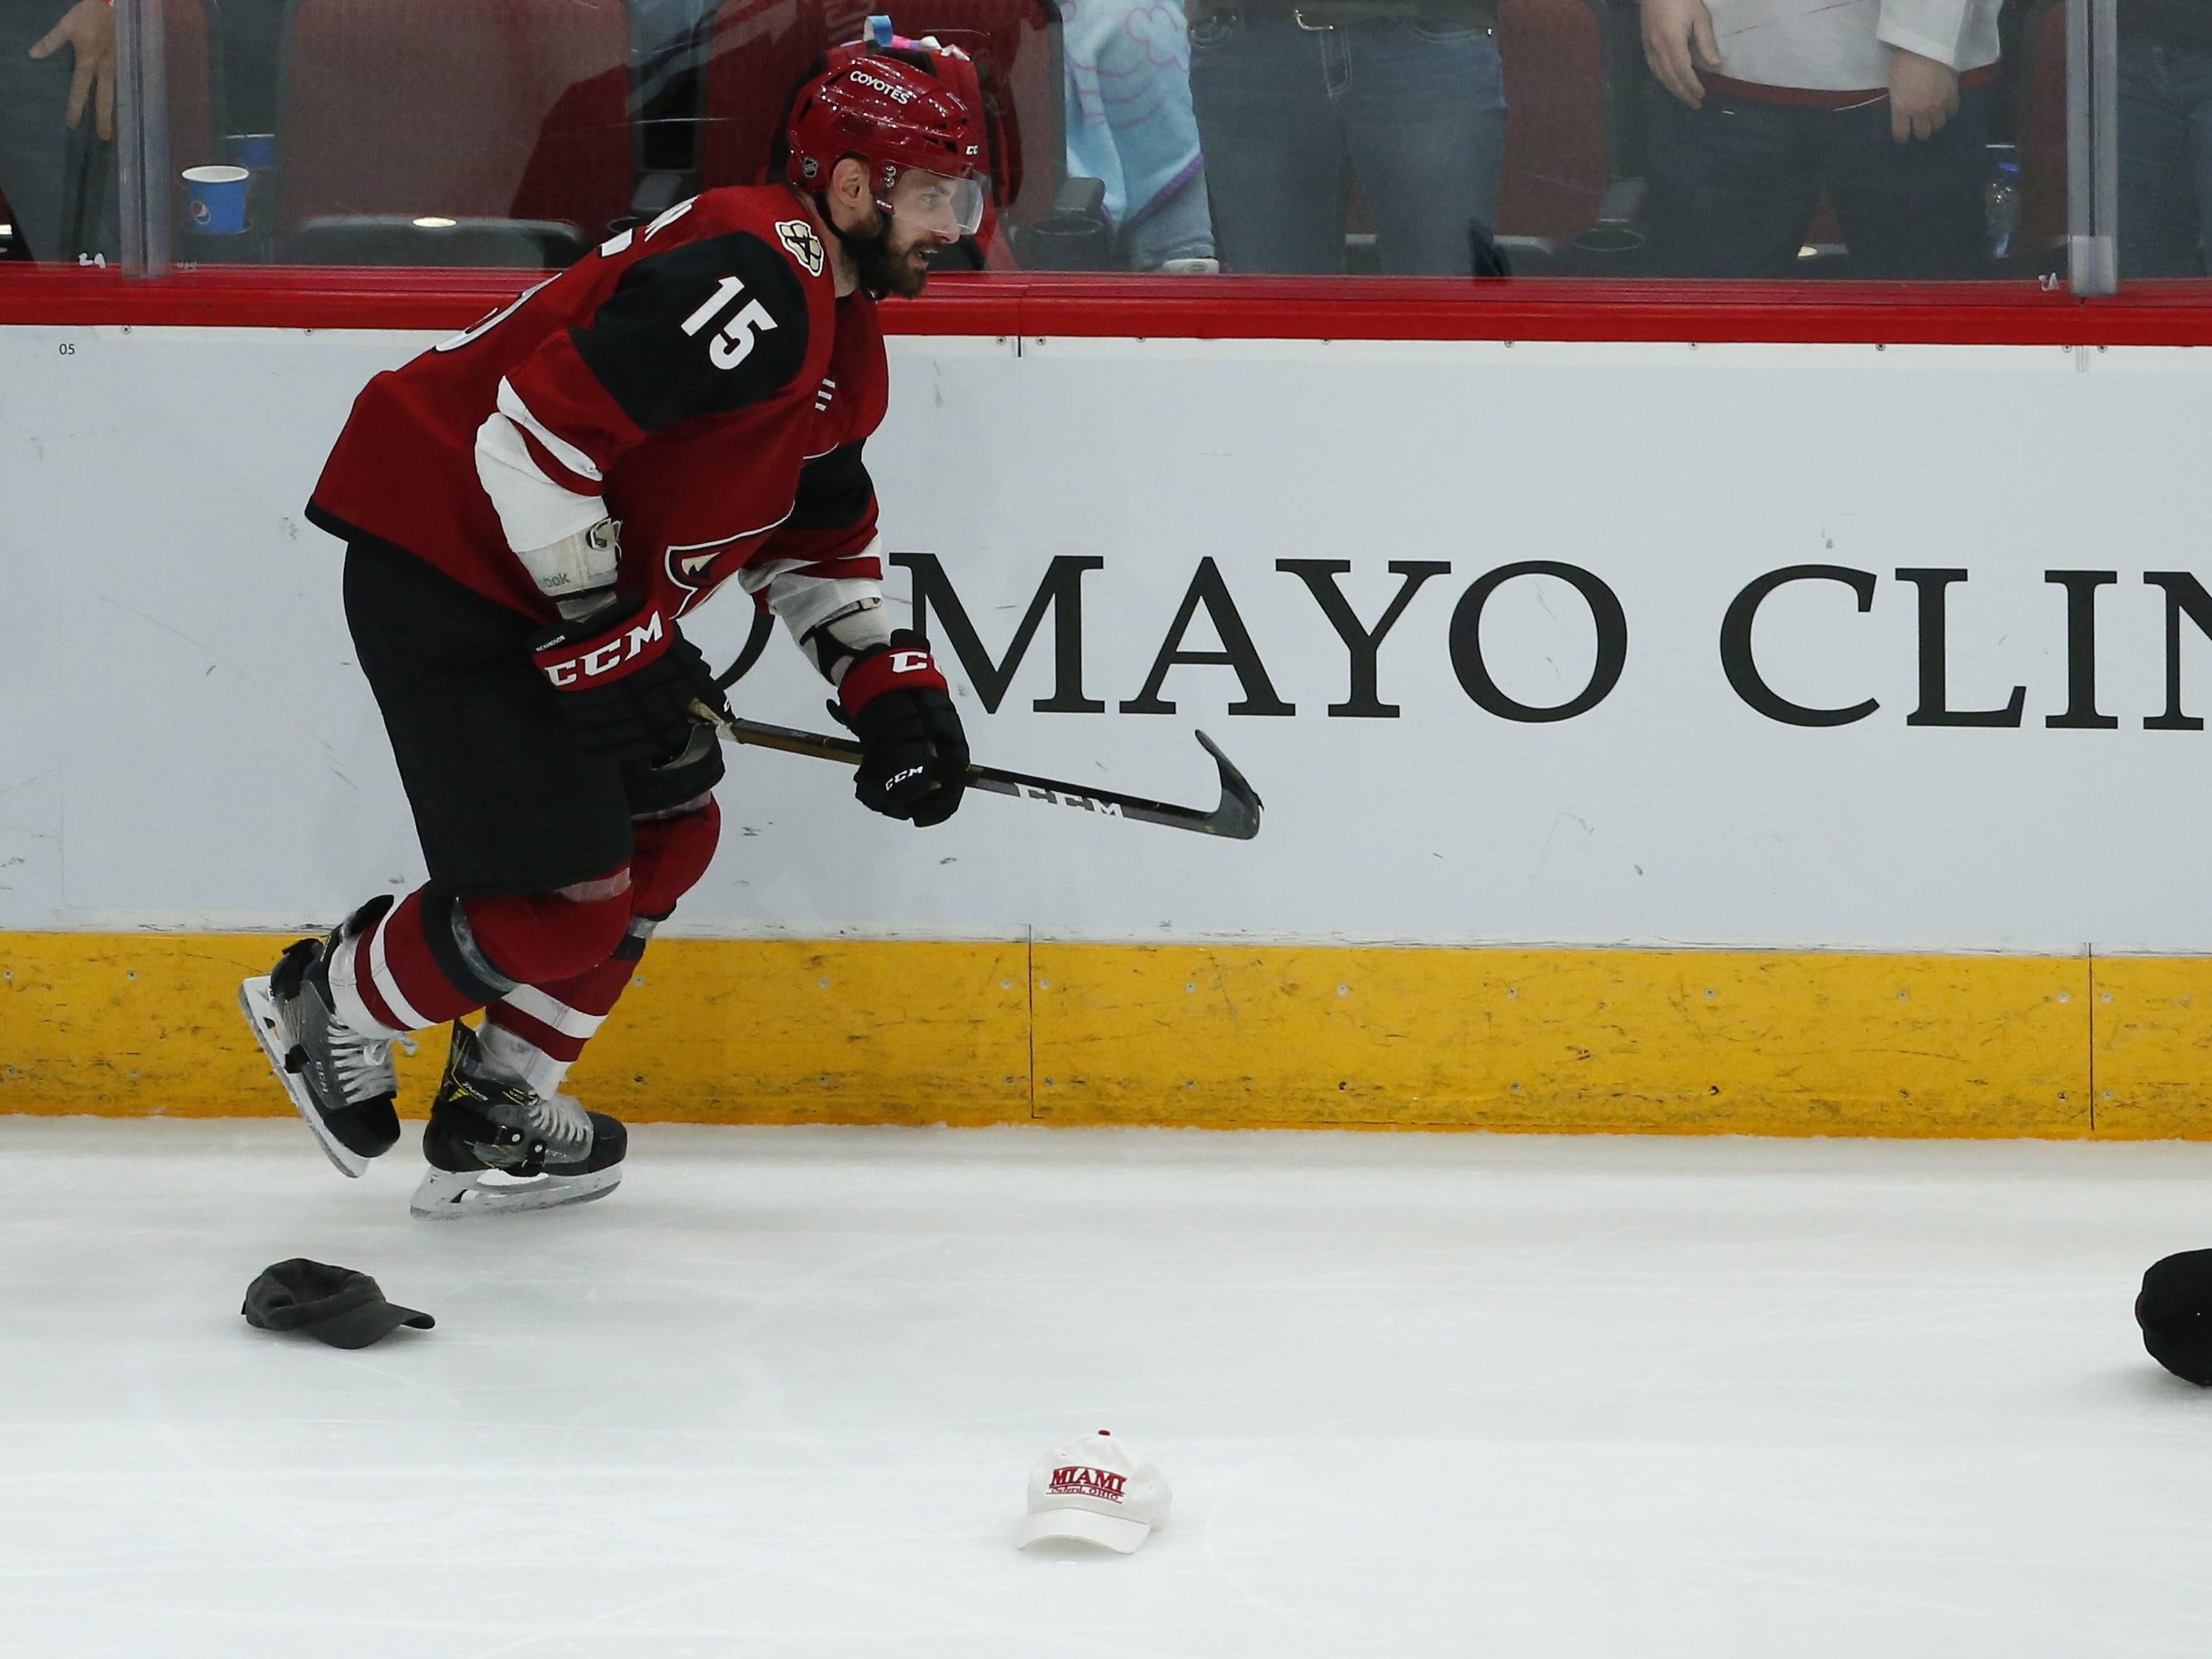 Arizona Coyotes center Brad Richardson (15) scores a hat trick during a NHL game against the Vancouver Canucks at Gila River Arena in Glendale on February 28.